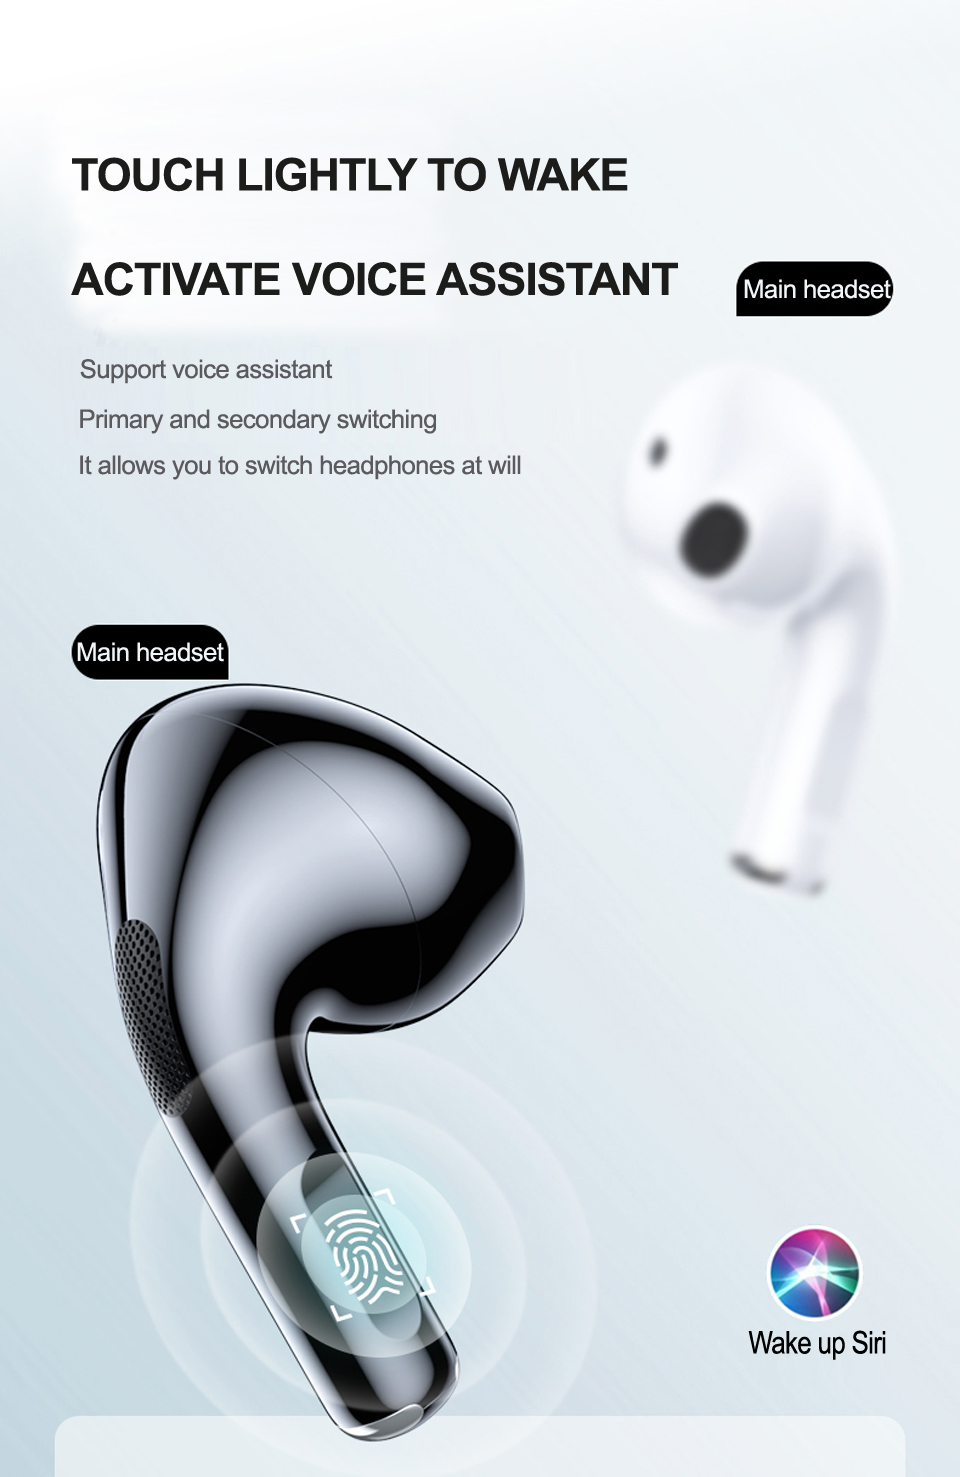 NEW Original Lenovo LP40 TWS Wireless Earphone Bluetooth 5.0 Dual Stereo Noise Reduction Bass Touch Control Long Standby 300mAH